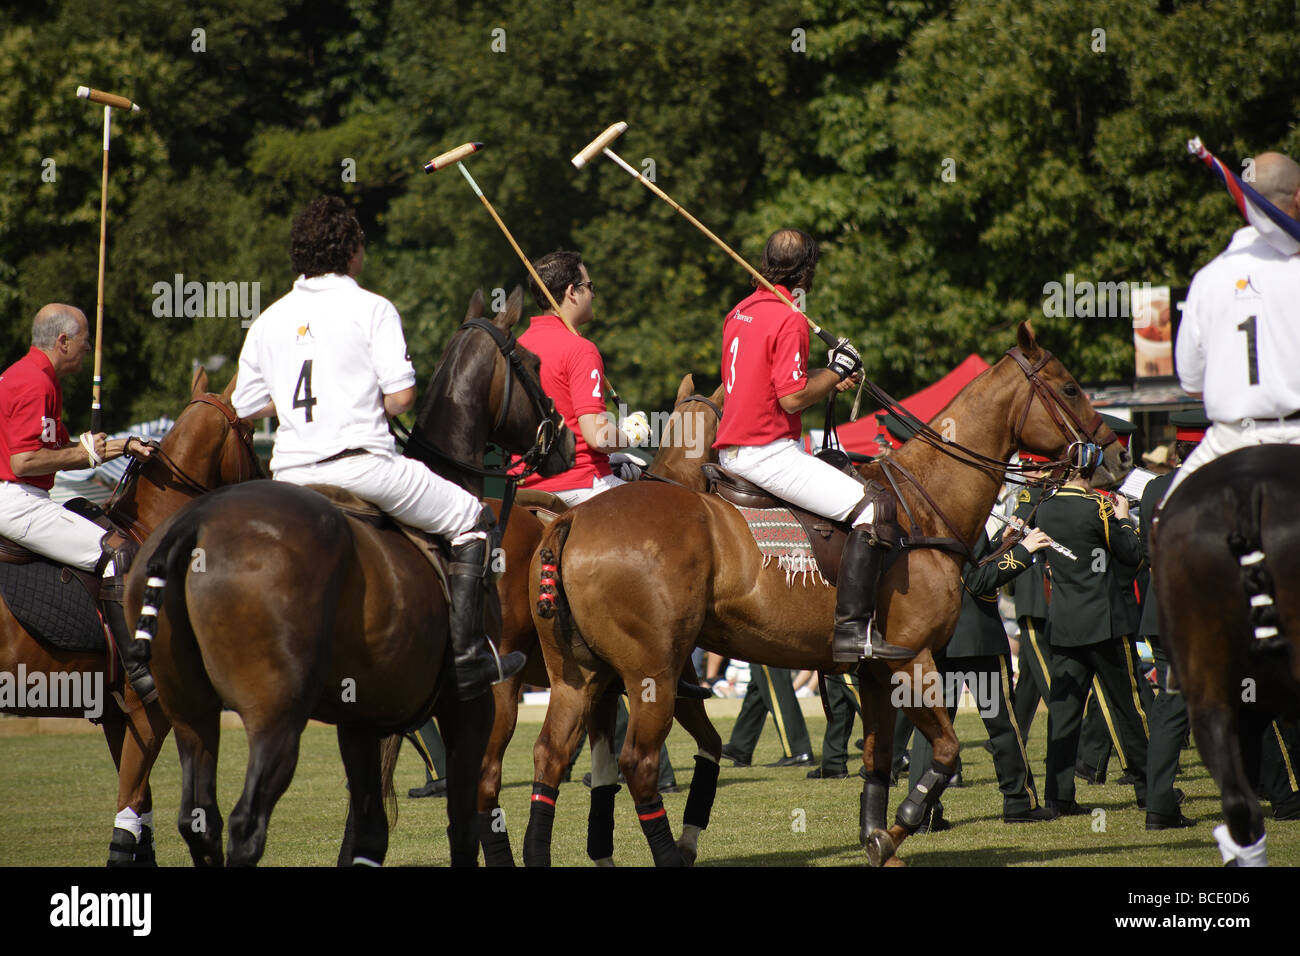 Polo match,England vs Argentina,summer game,south east of england - Stock Image